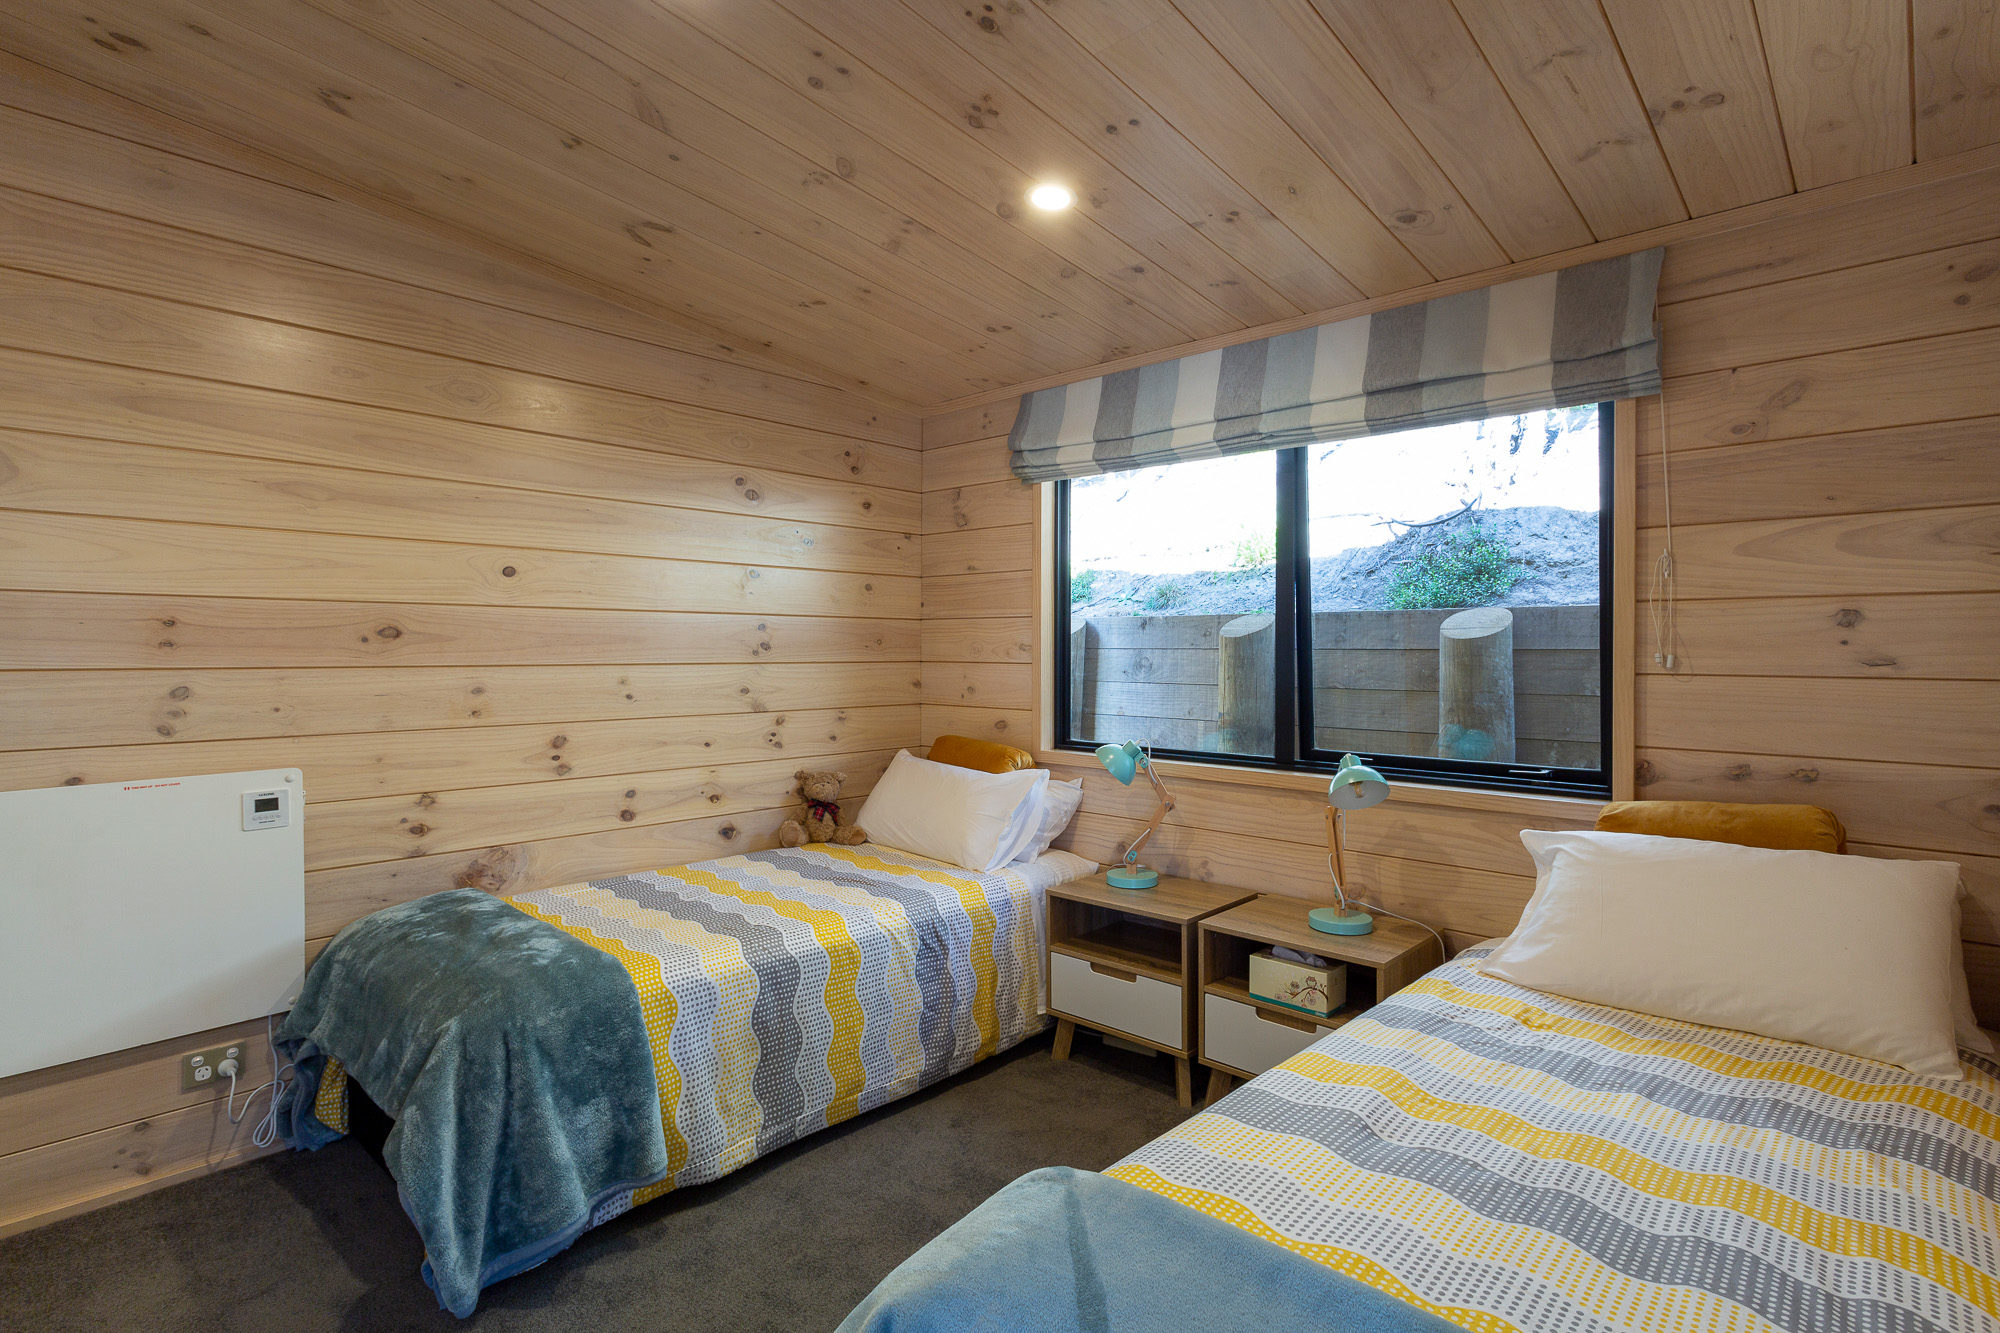 Second bedroom in Lockwood ReadyBuilt holiday accommodation